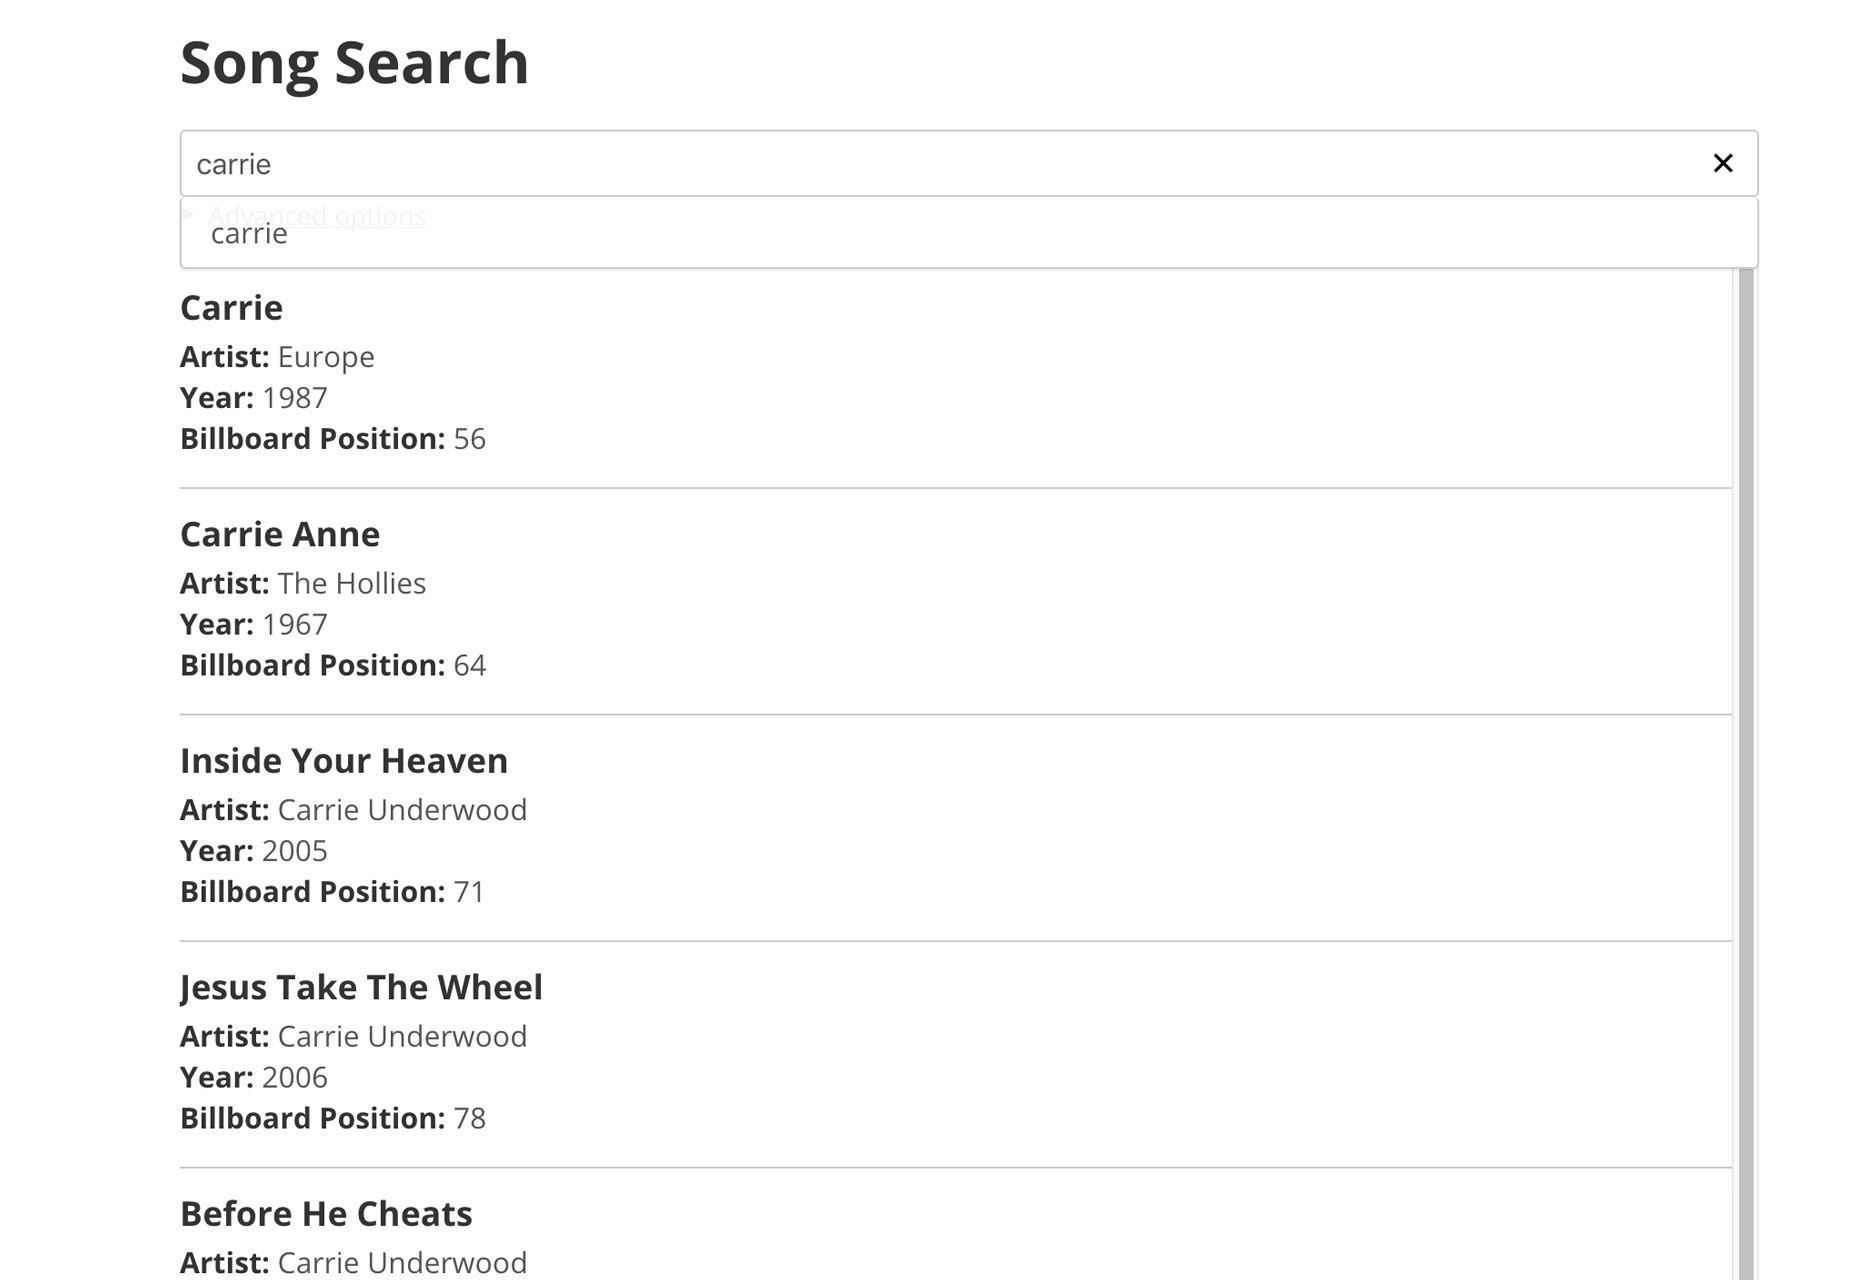 minisearch